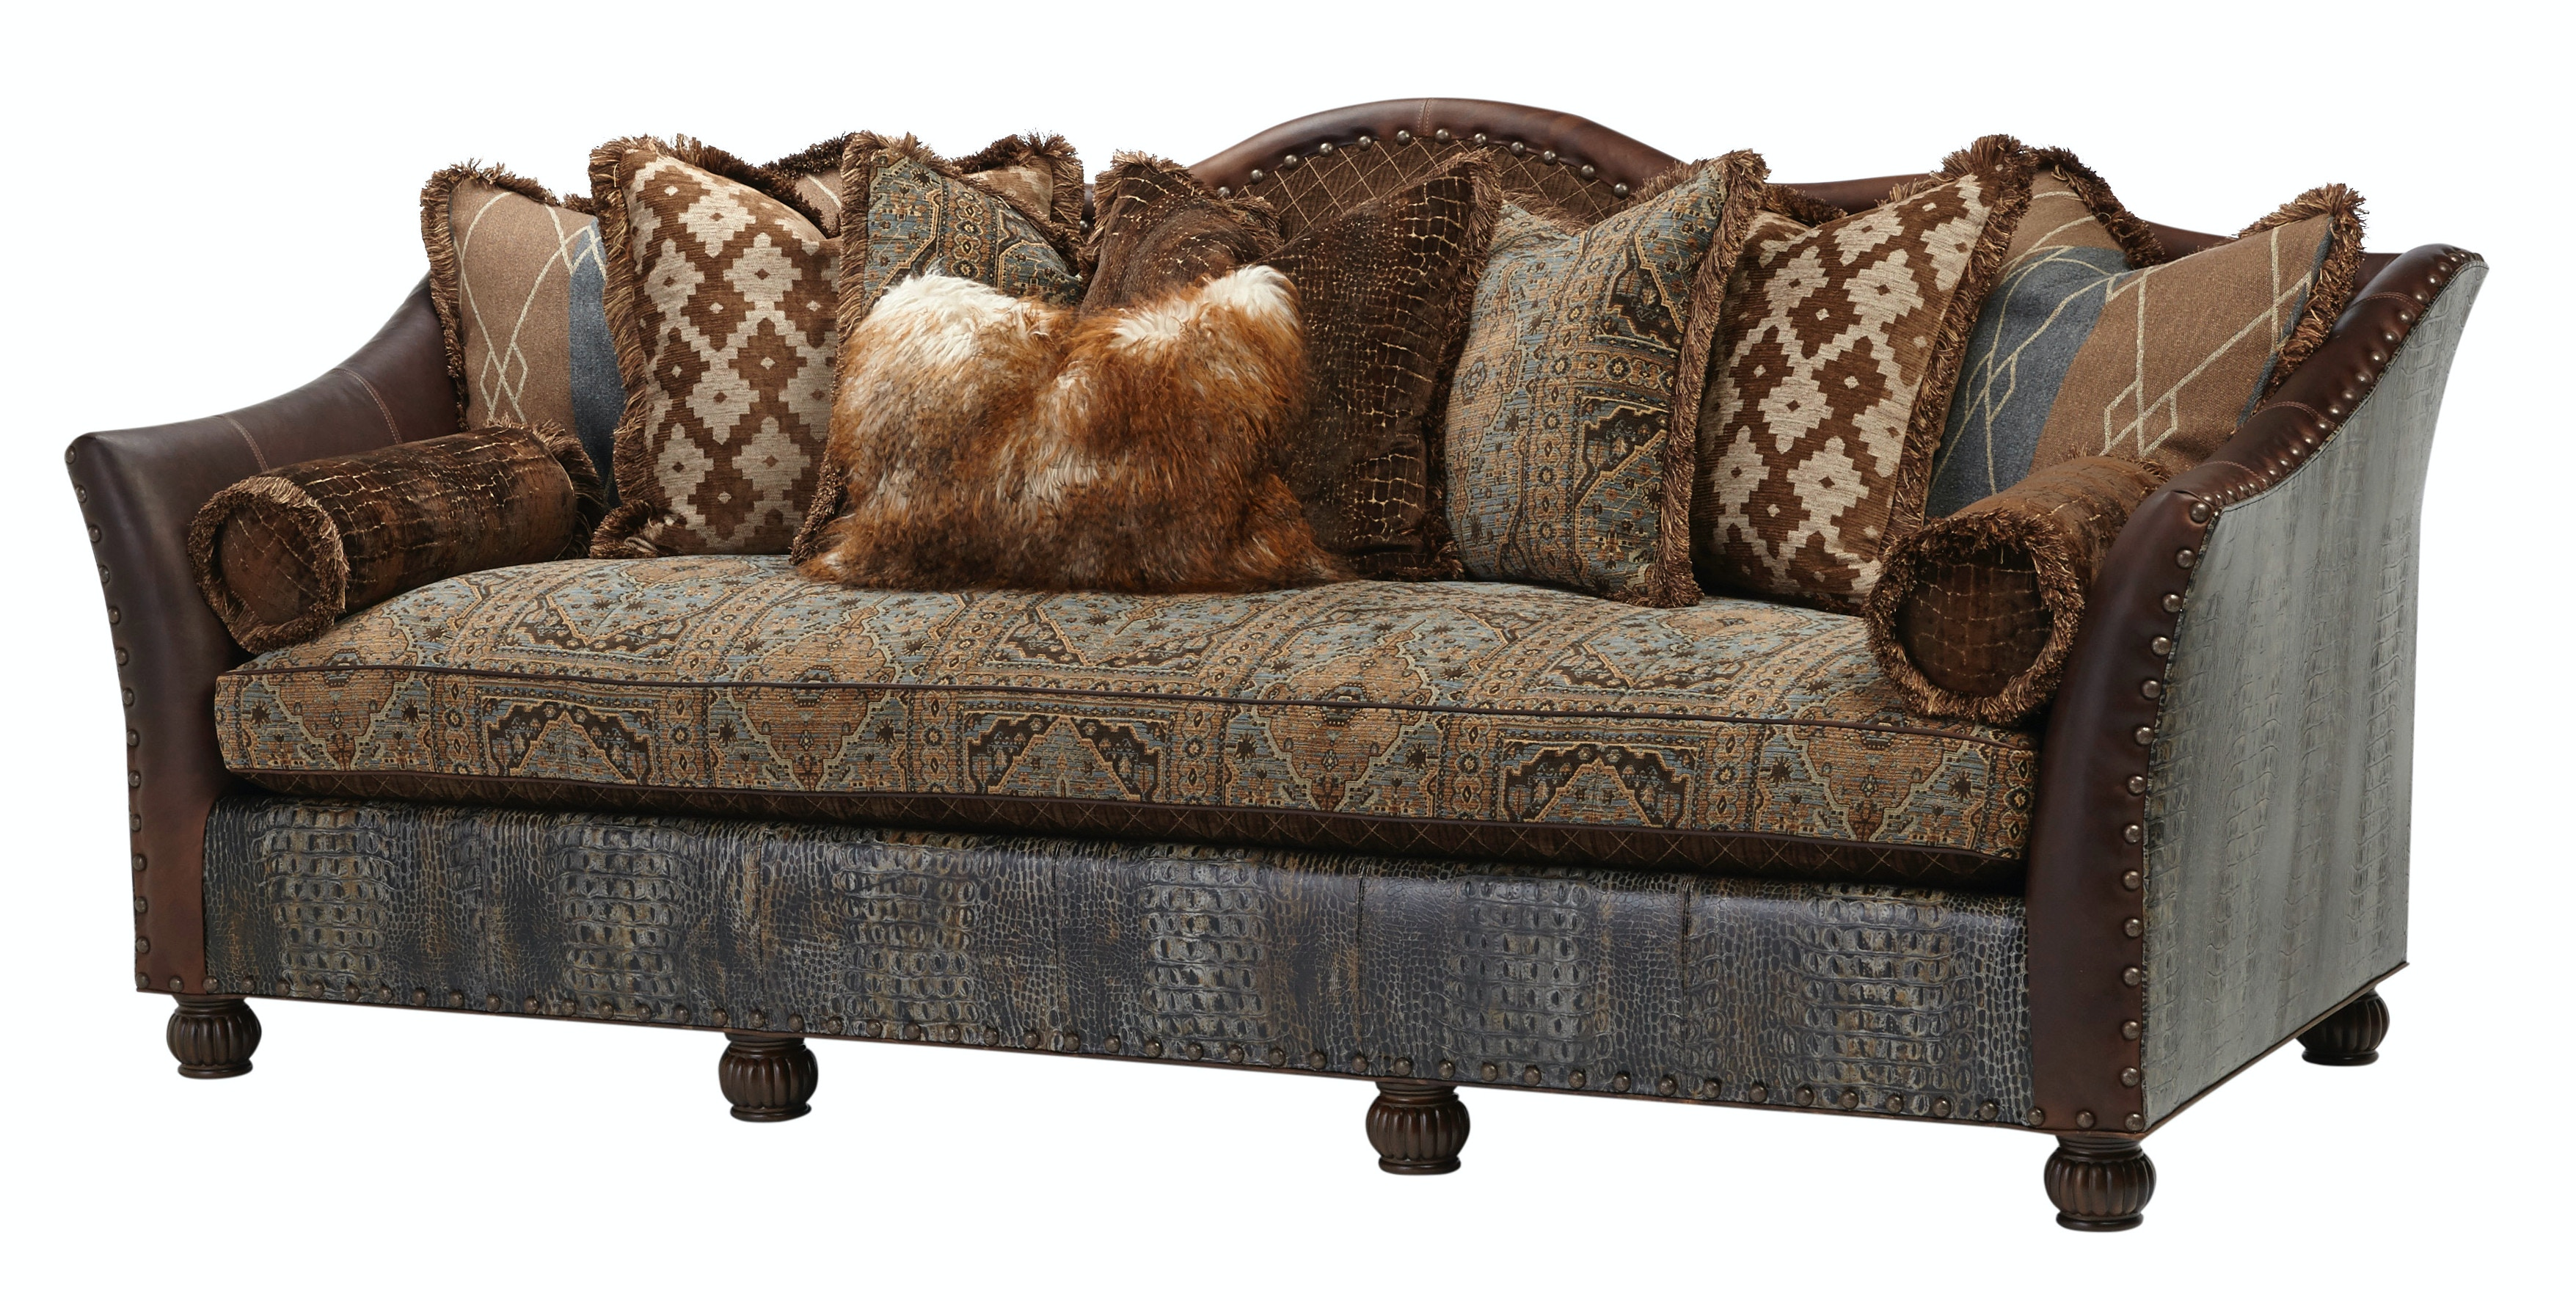 Superieur Living Room Fabric Leather Sofa At Colorado Style Home Furnishings